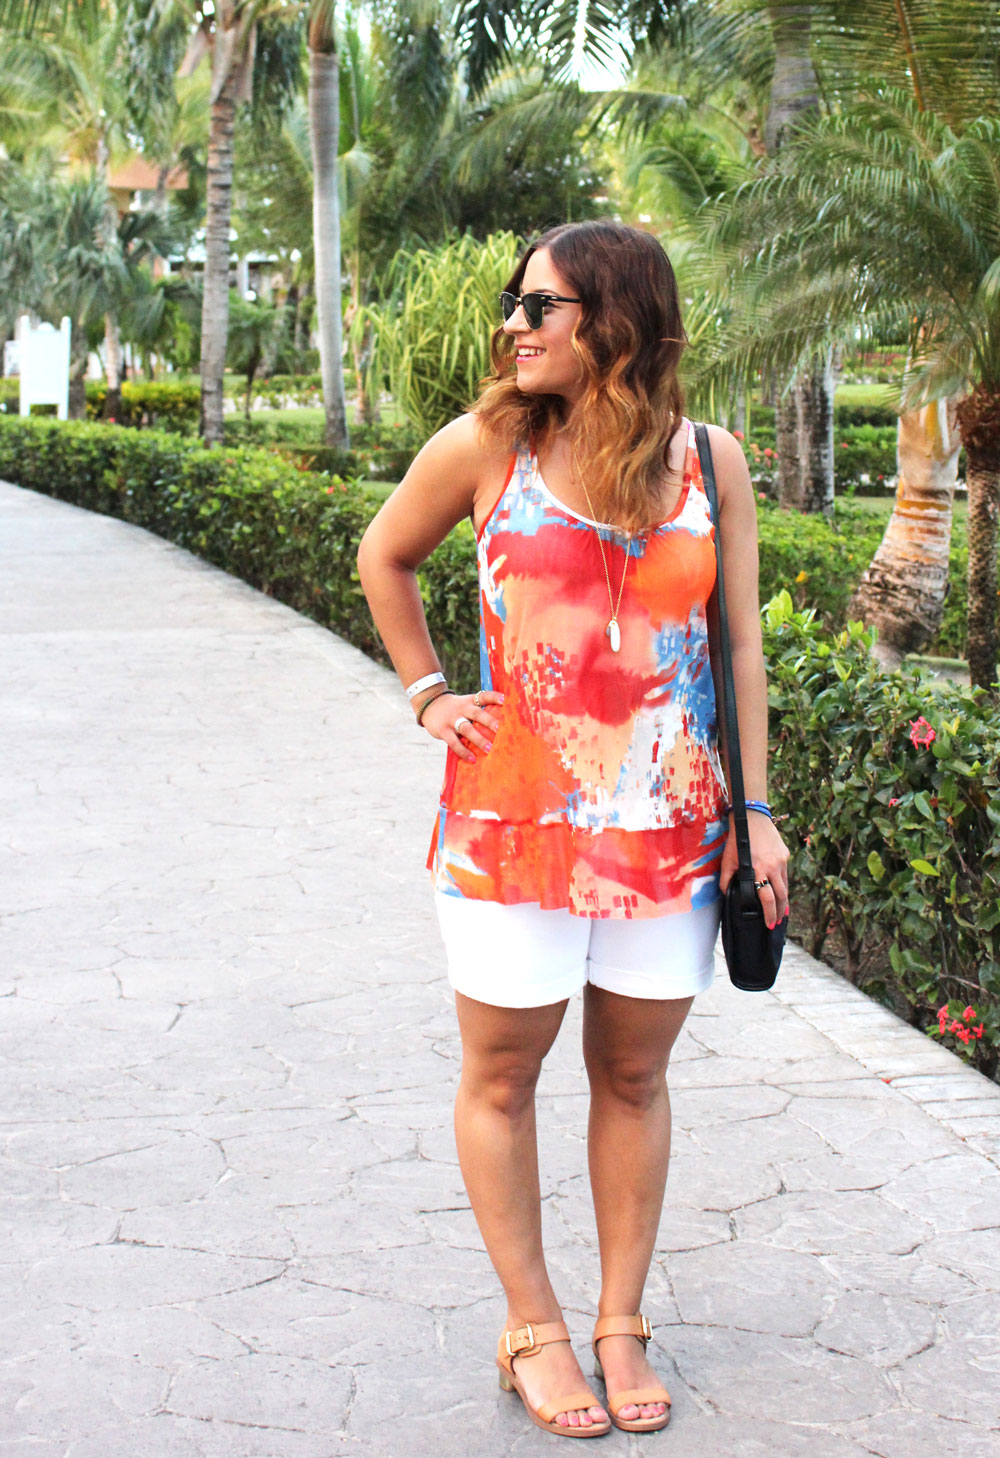 Spring Break Style - Bright Tank Top and White Shorts